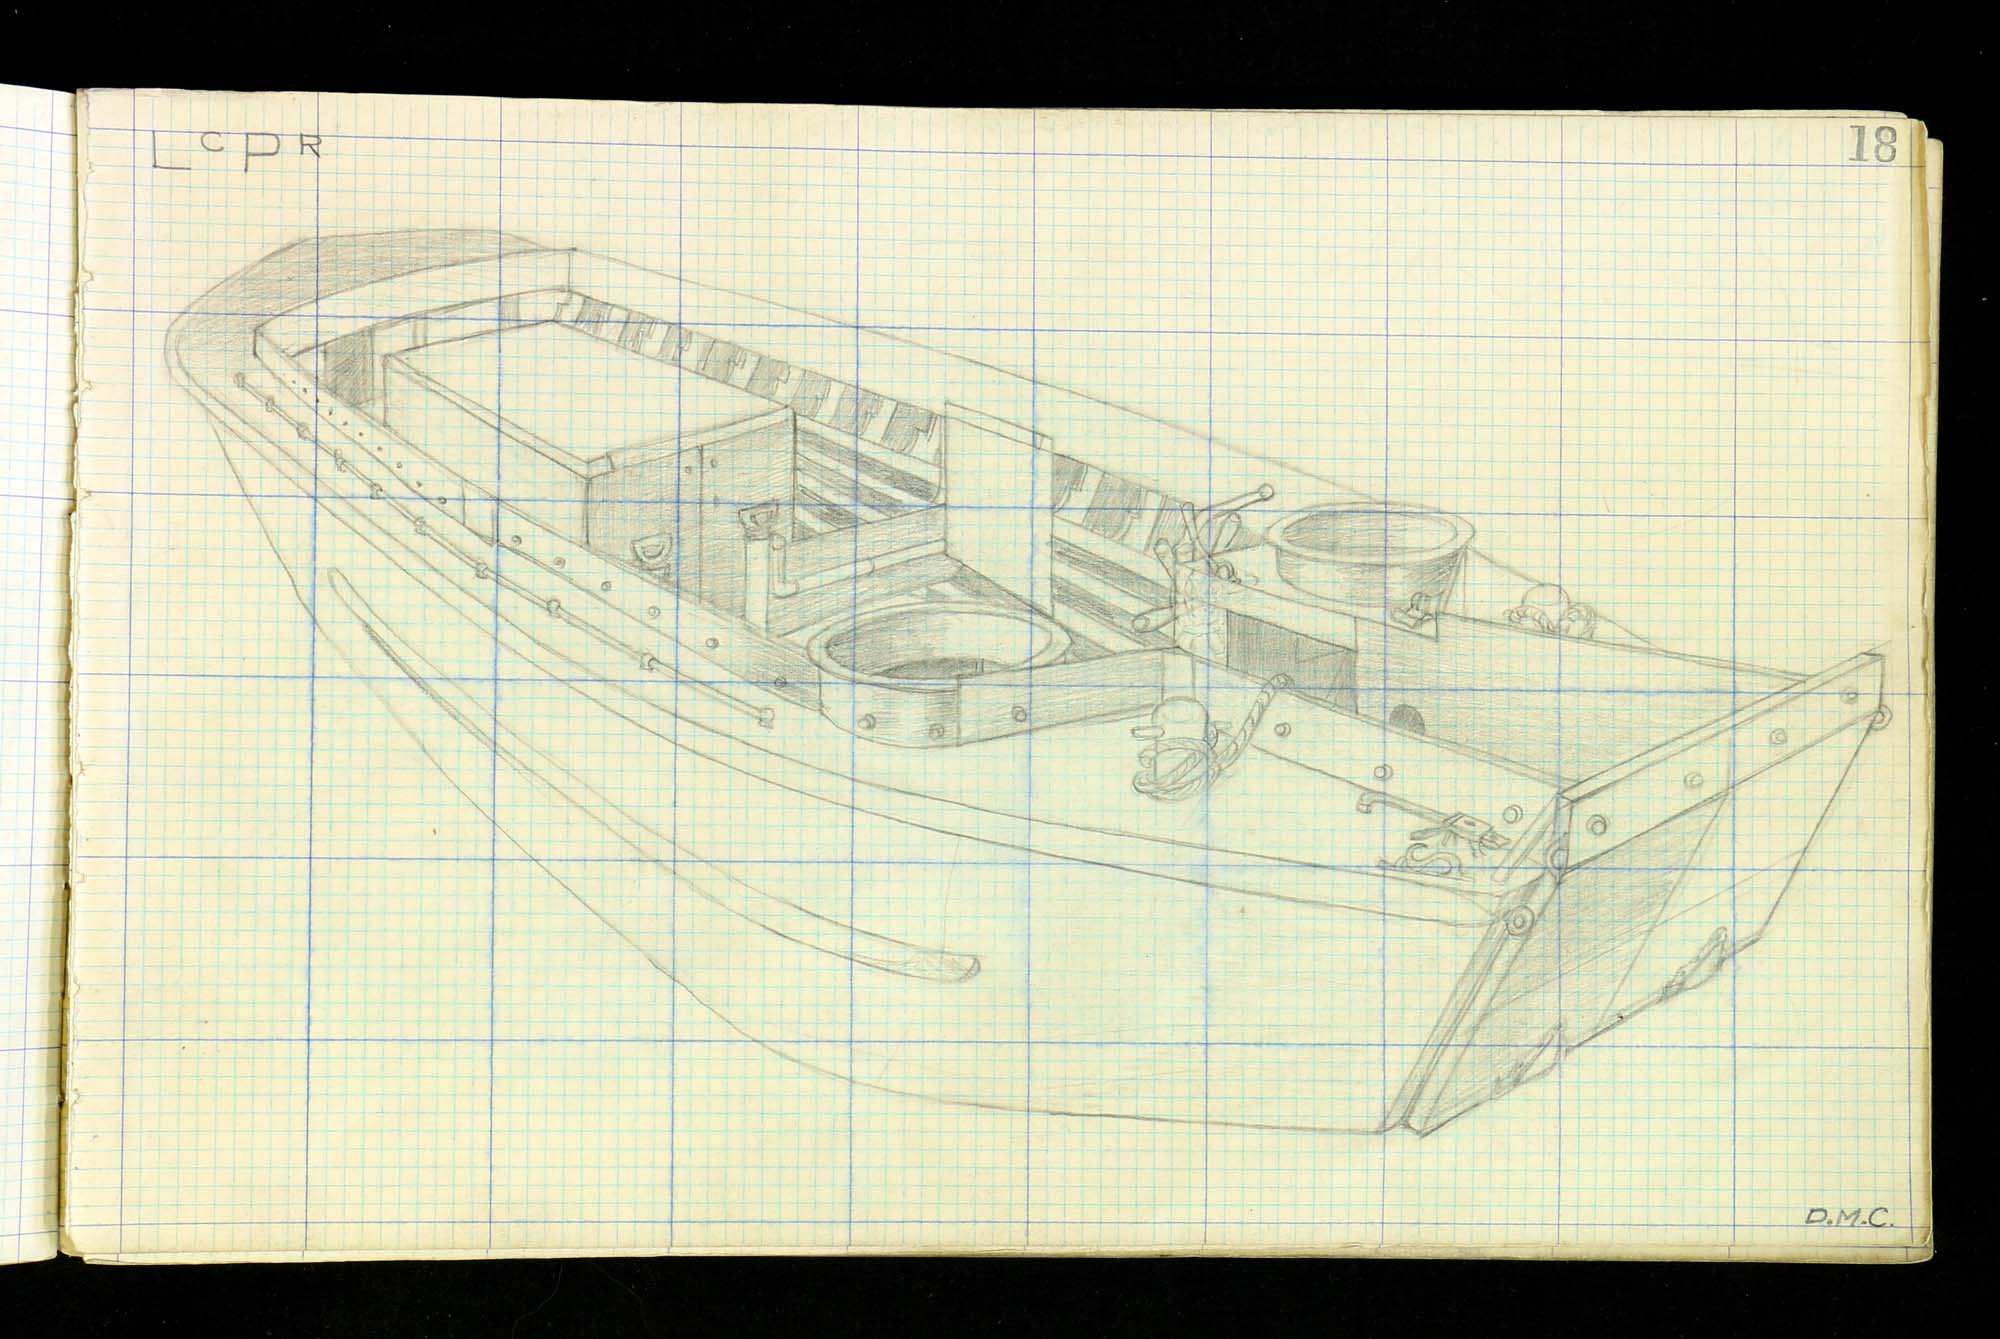 a pencil drawing of a landing craft